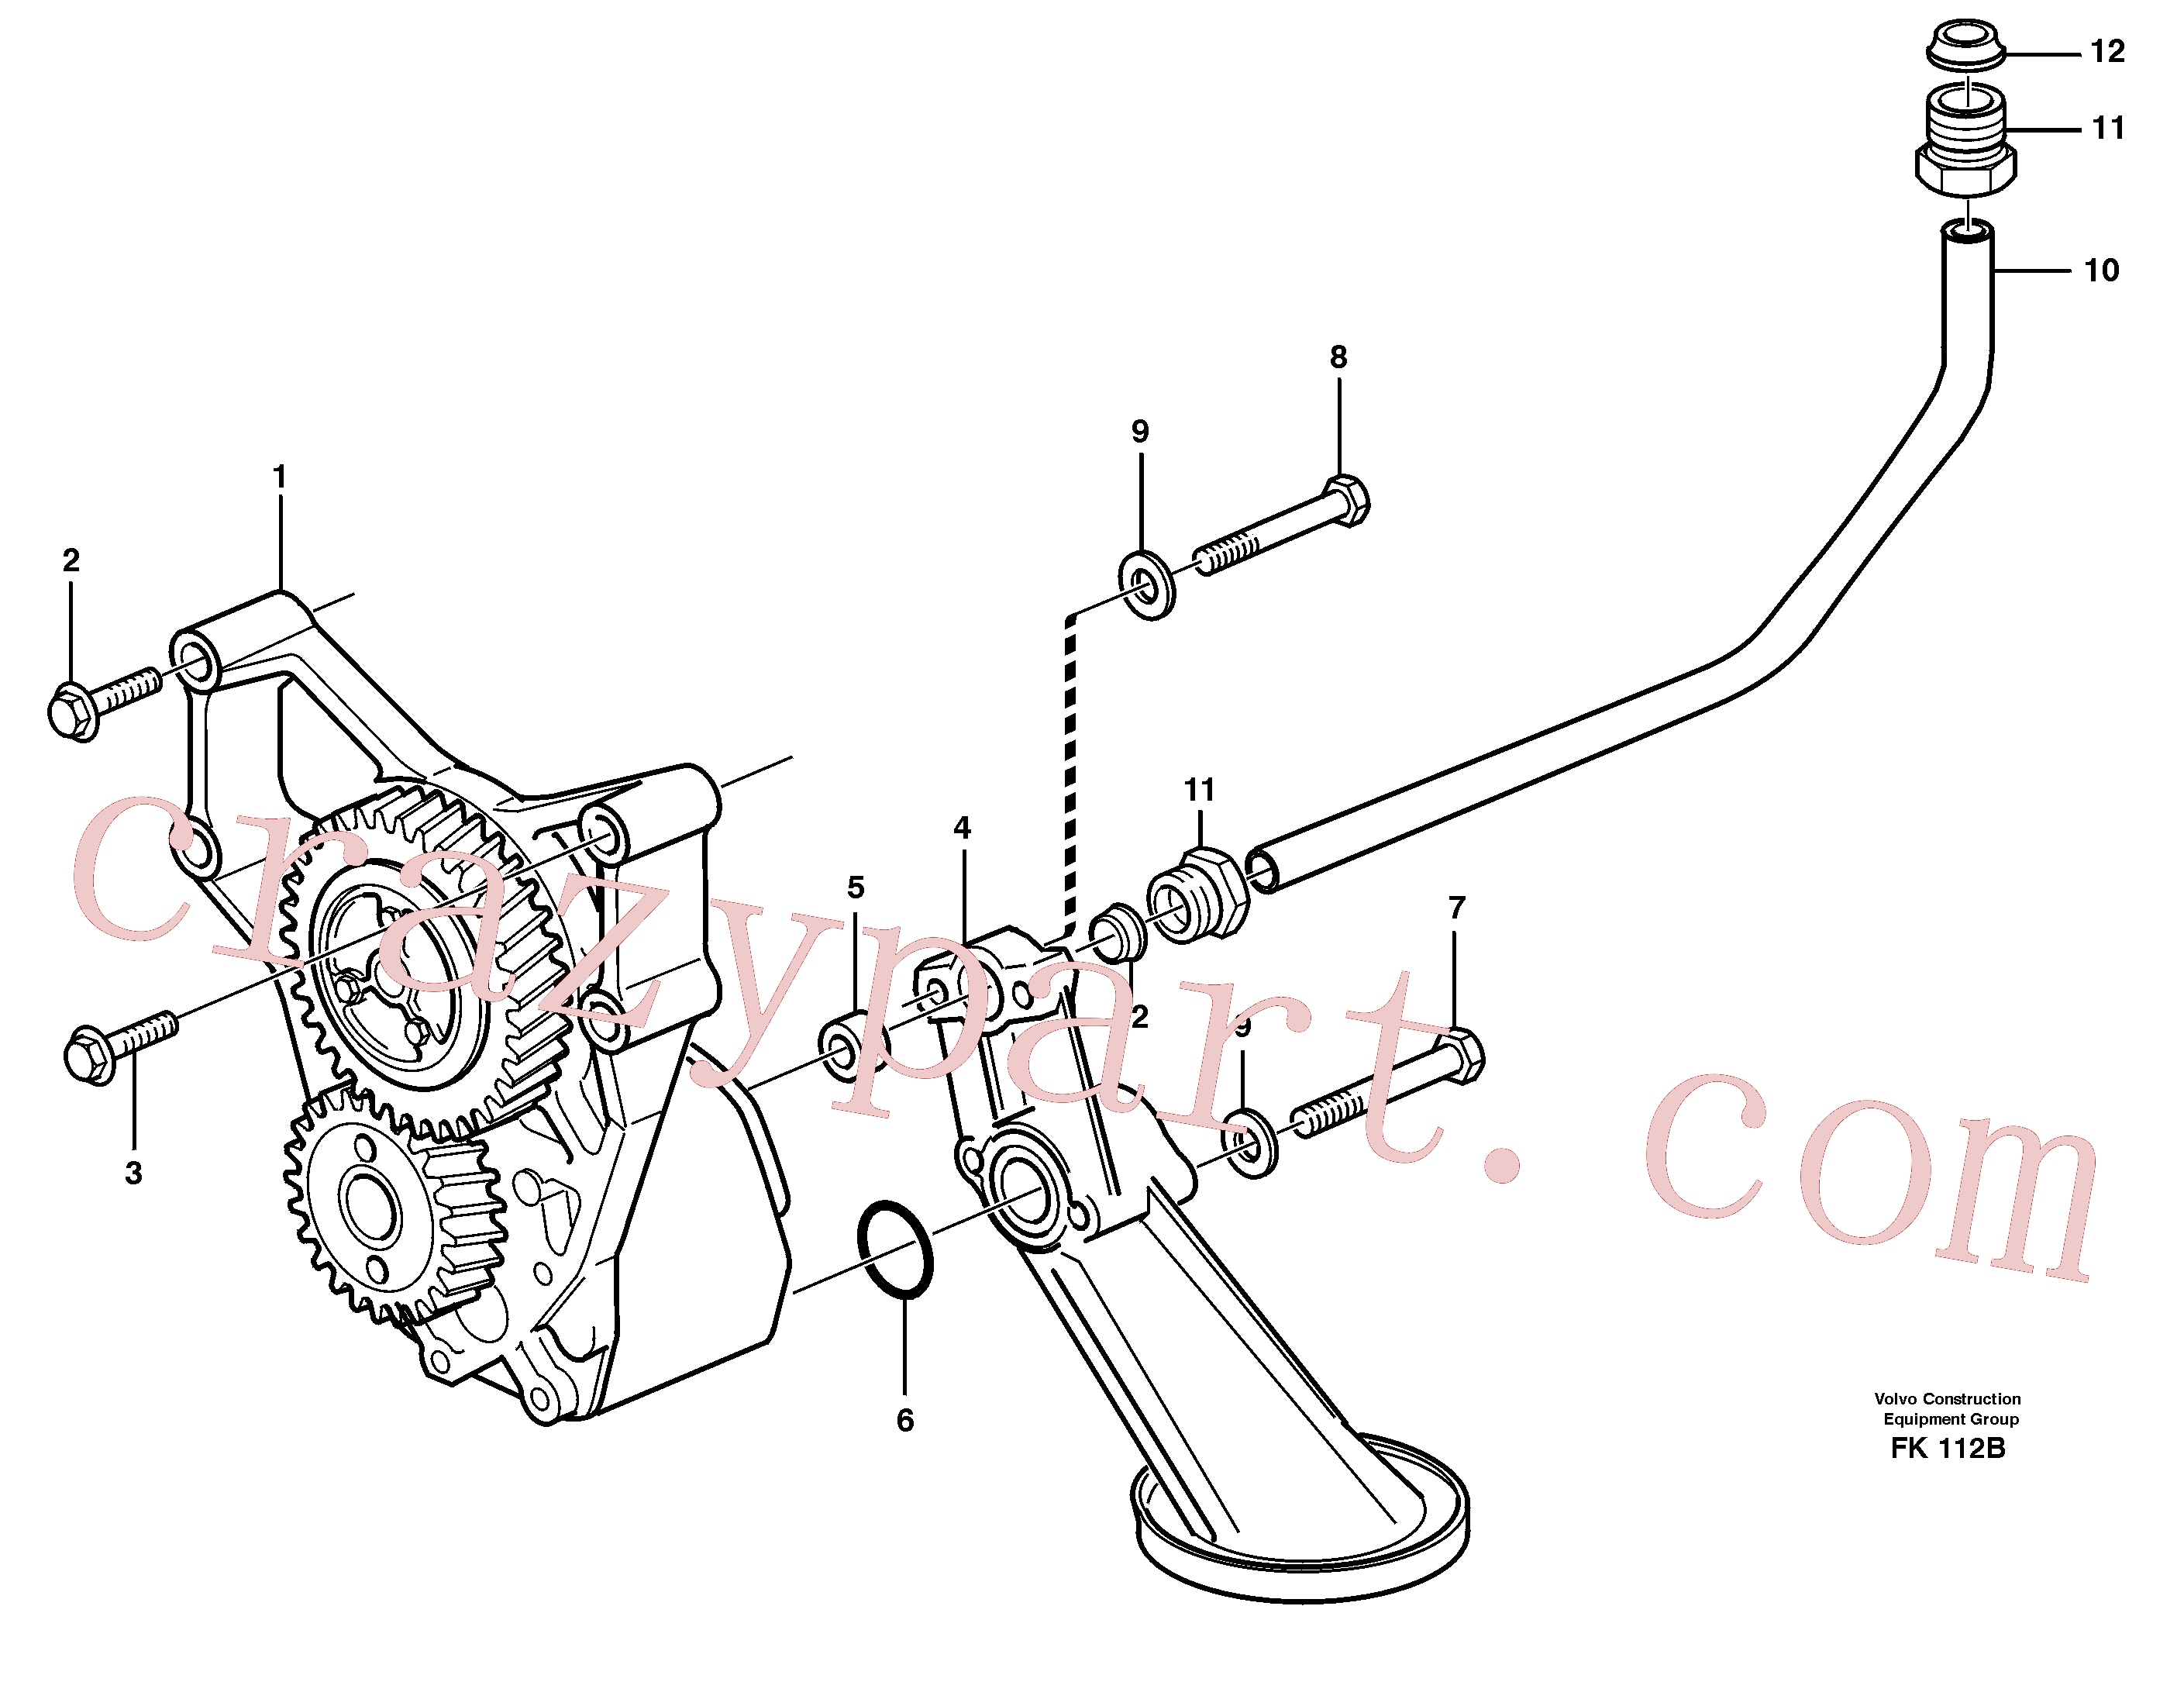 VOE980786 for Volvo Lubricating oil system(FK112B assembly)